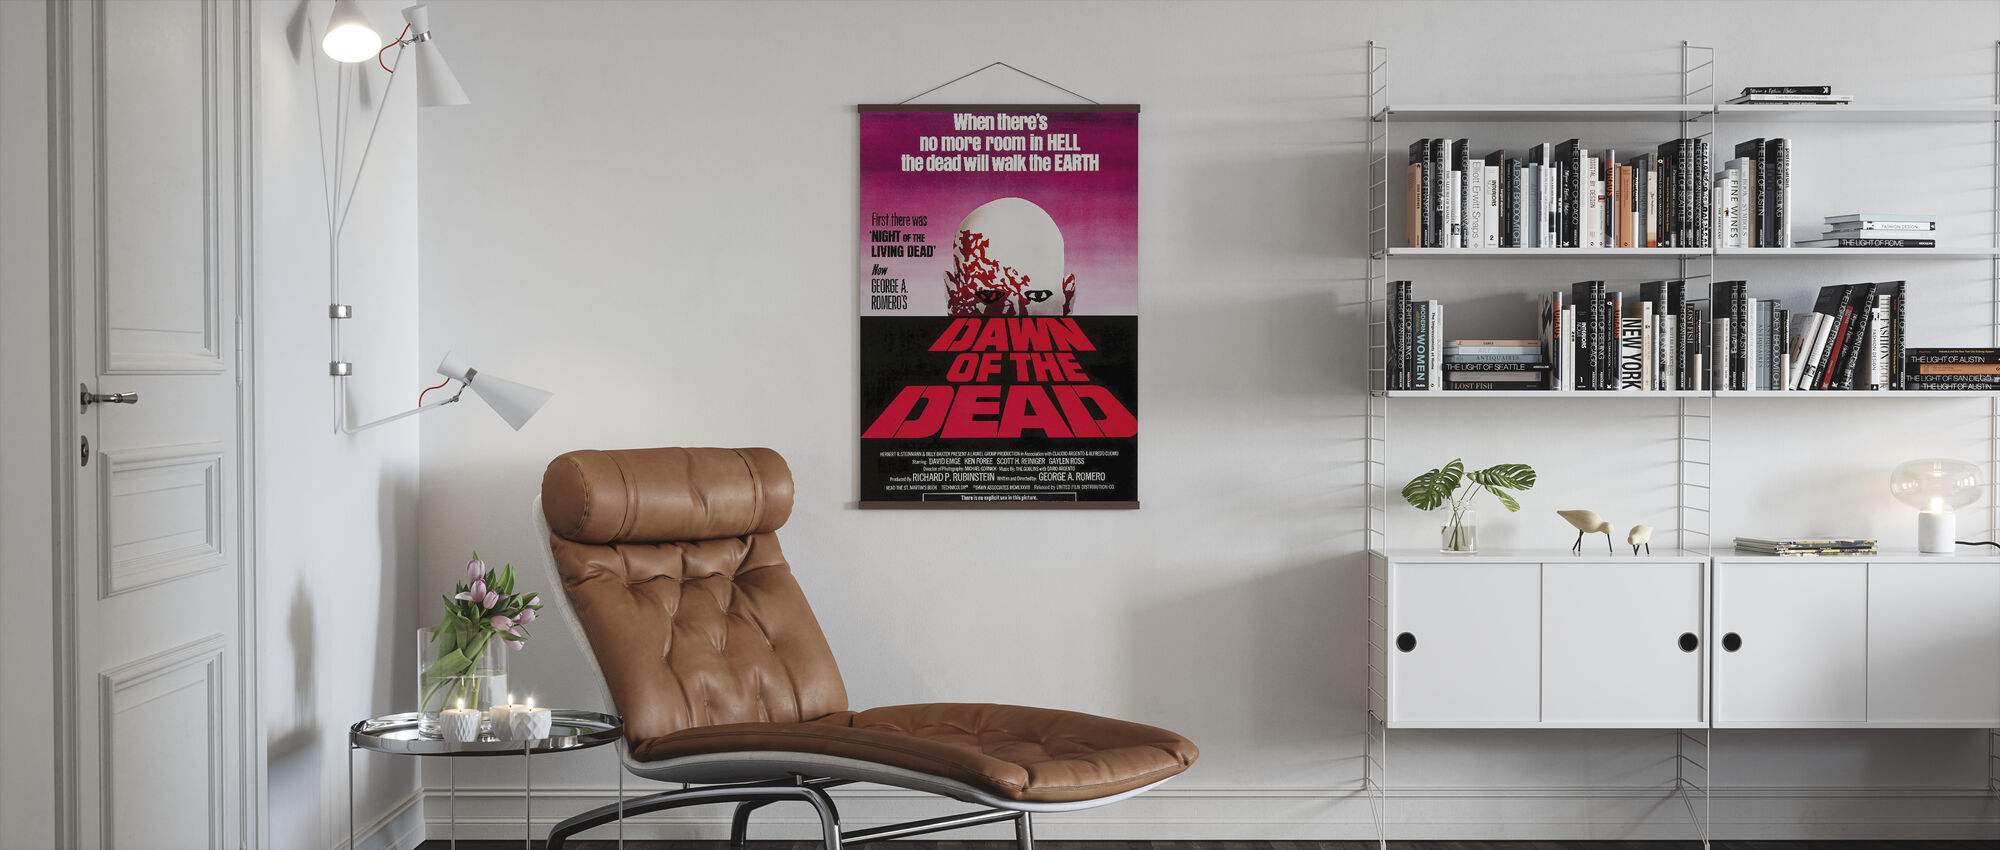 Dawn of the Dead - Poster - Living Room